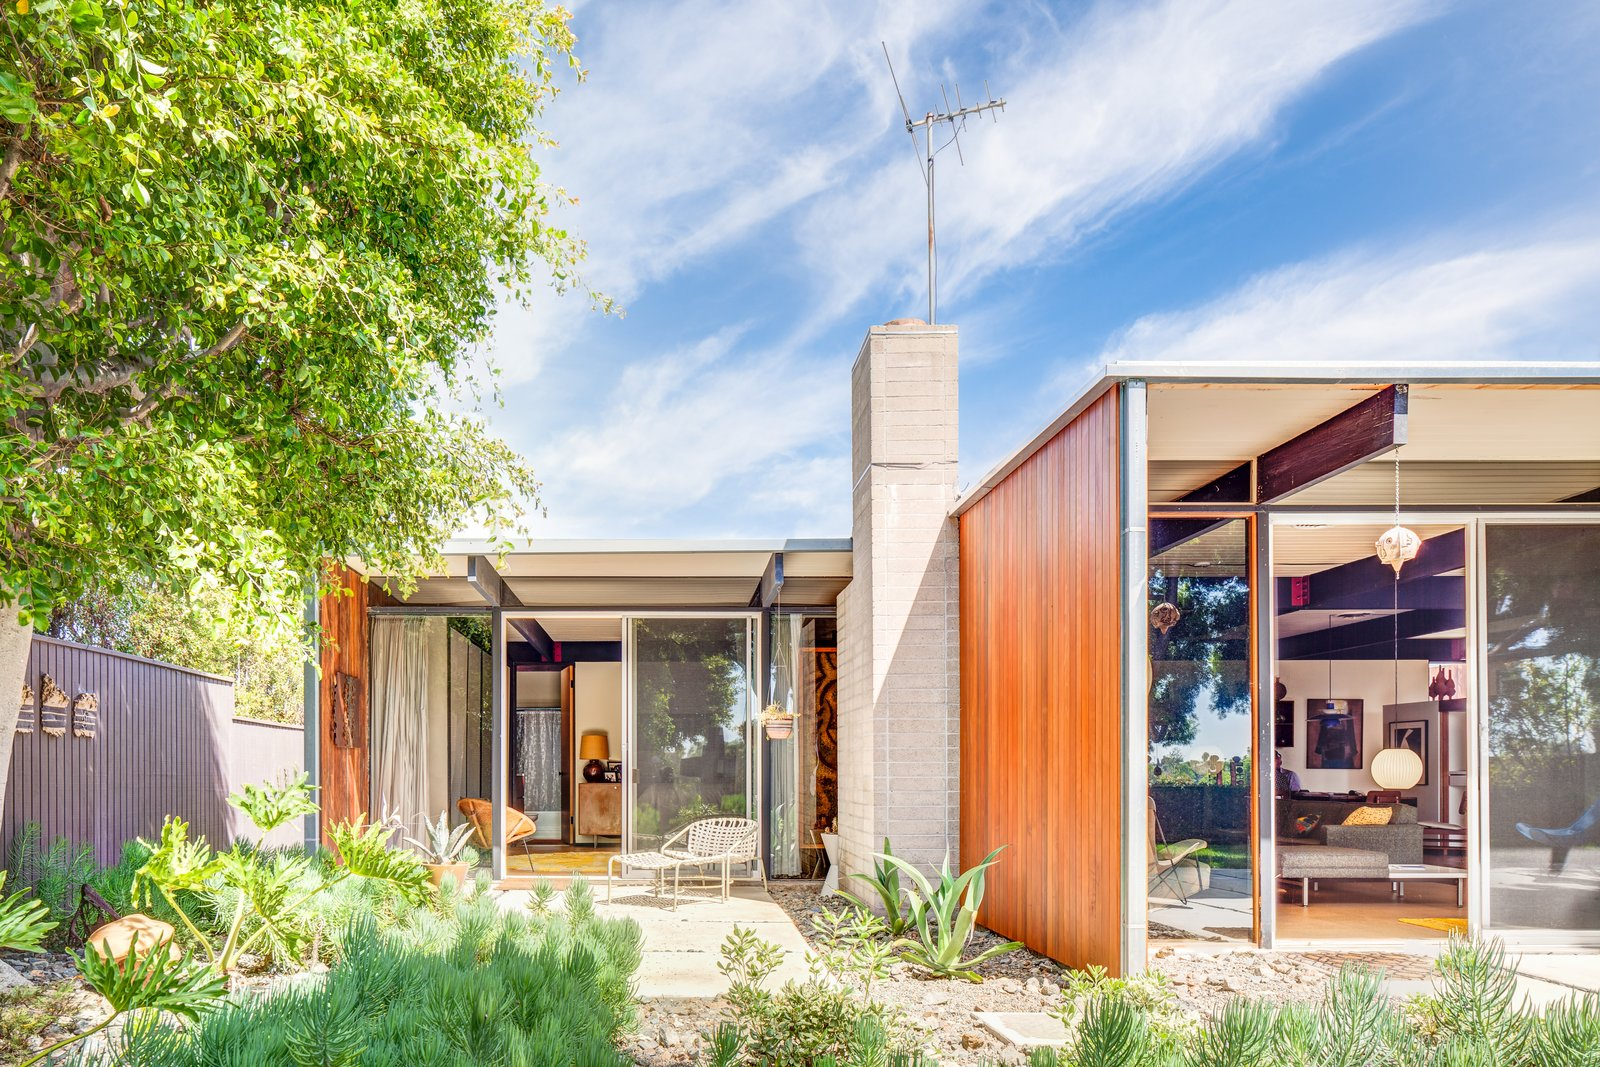 Tagged: Outdoor, Gardens, Small Patio, Porch, Deck, Back Yard, Concrete Patio, Porch, Deck, and Hardscapes. A Stunningly Restored Midcentury by Case Study Architect Craig Ellwood Asks $800K in San Diego - Photo 1 of 10